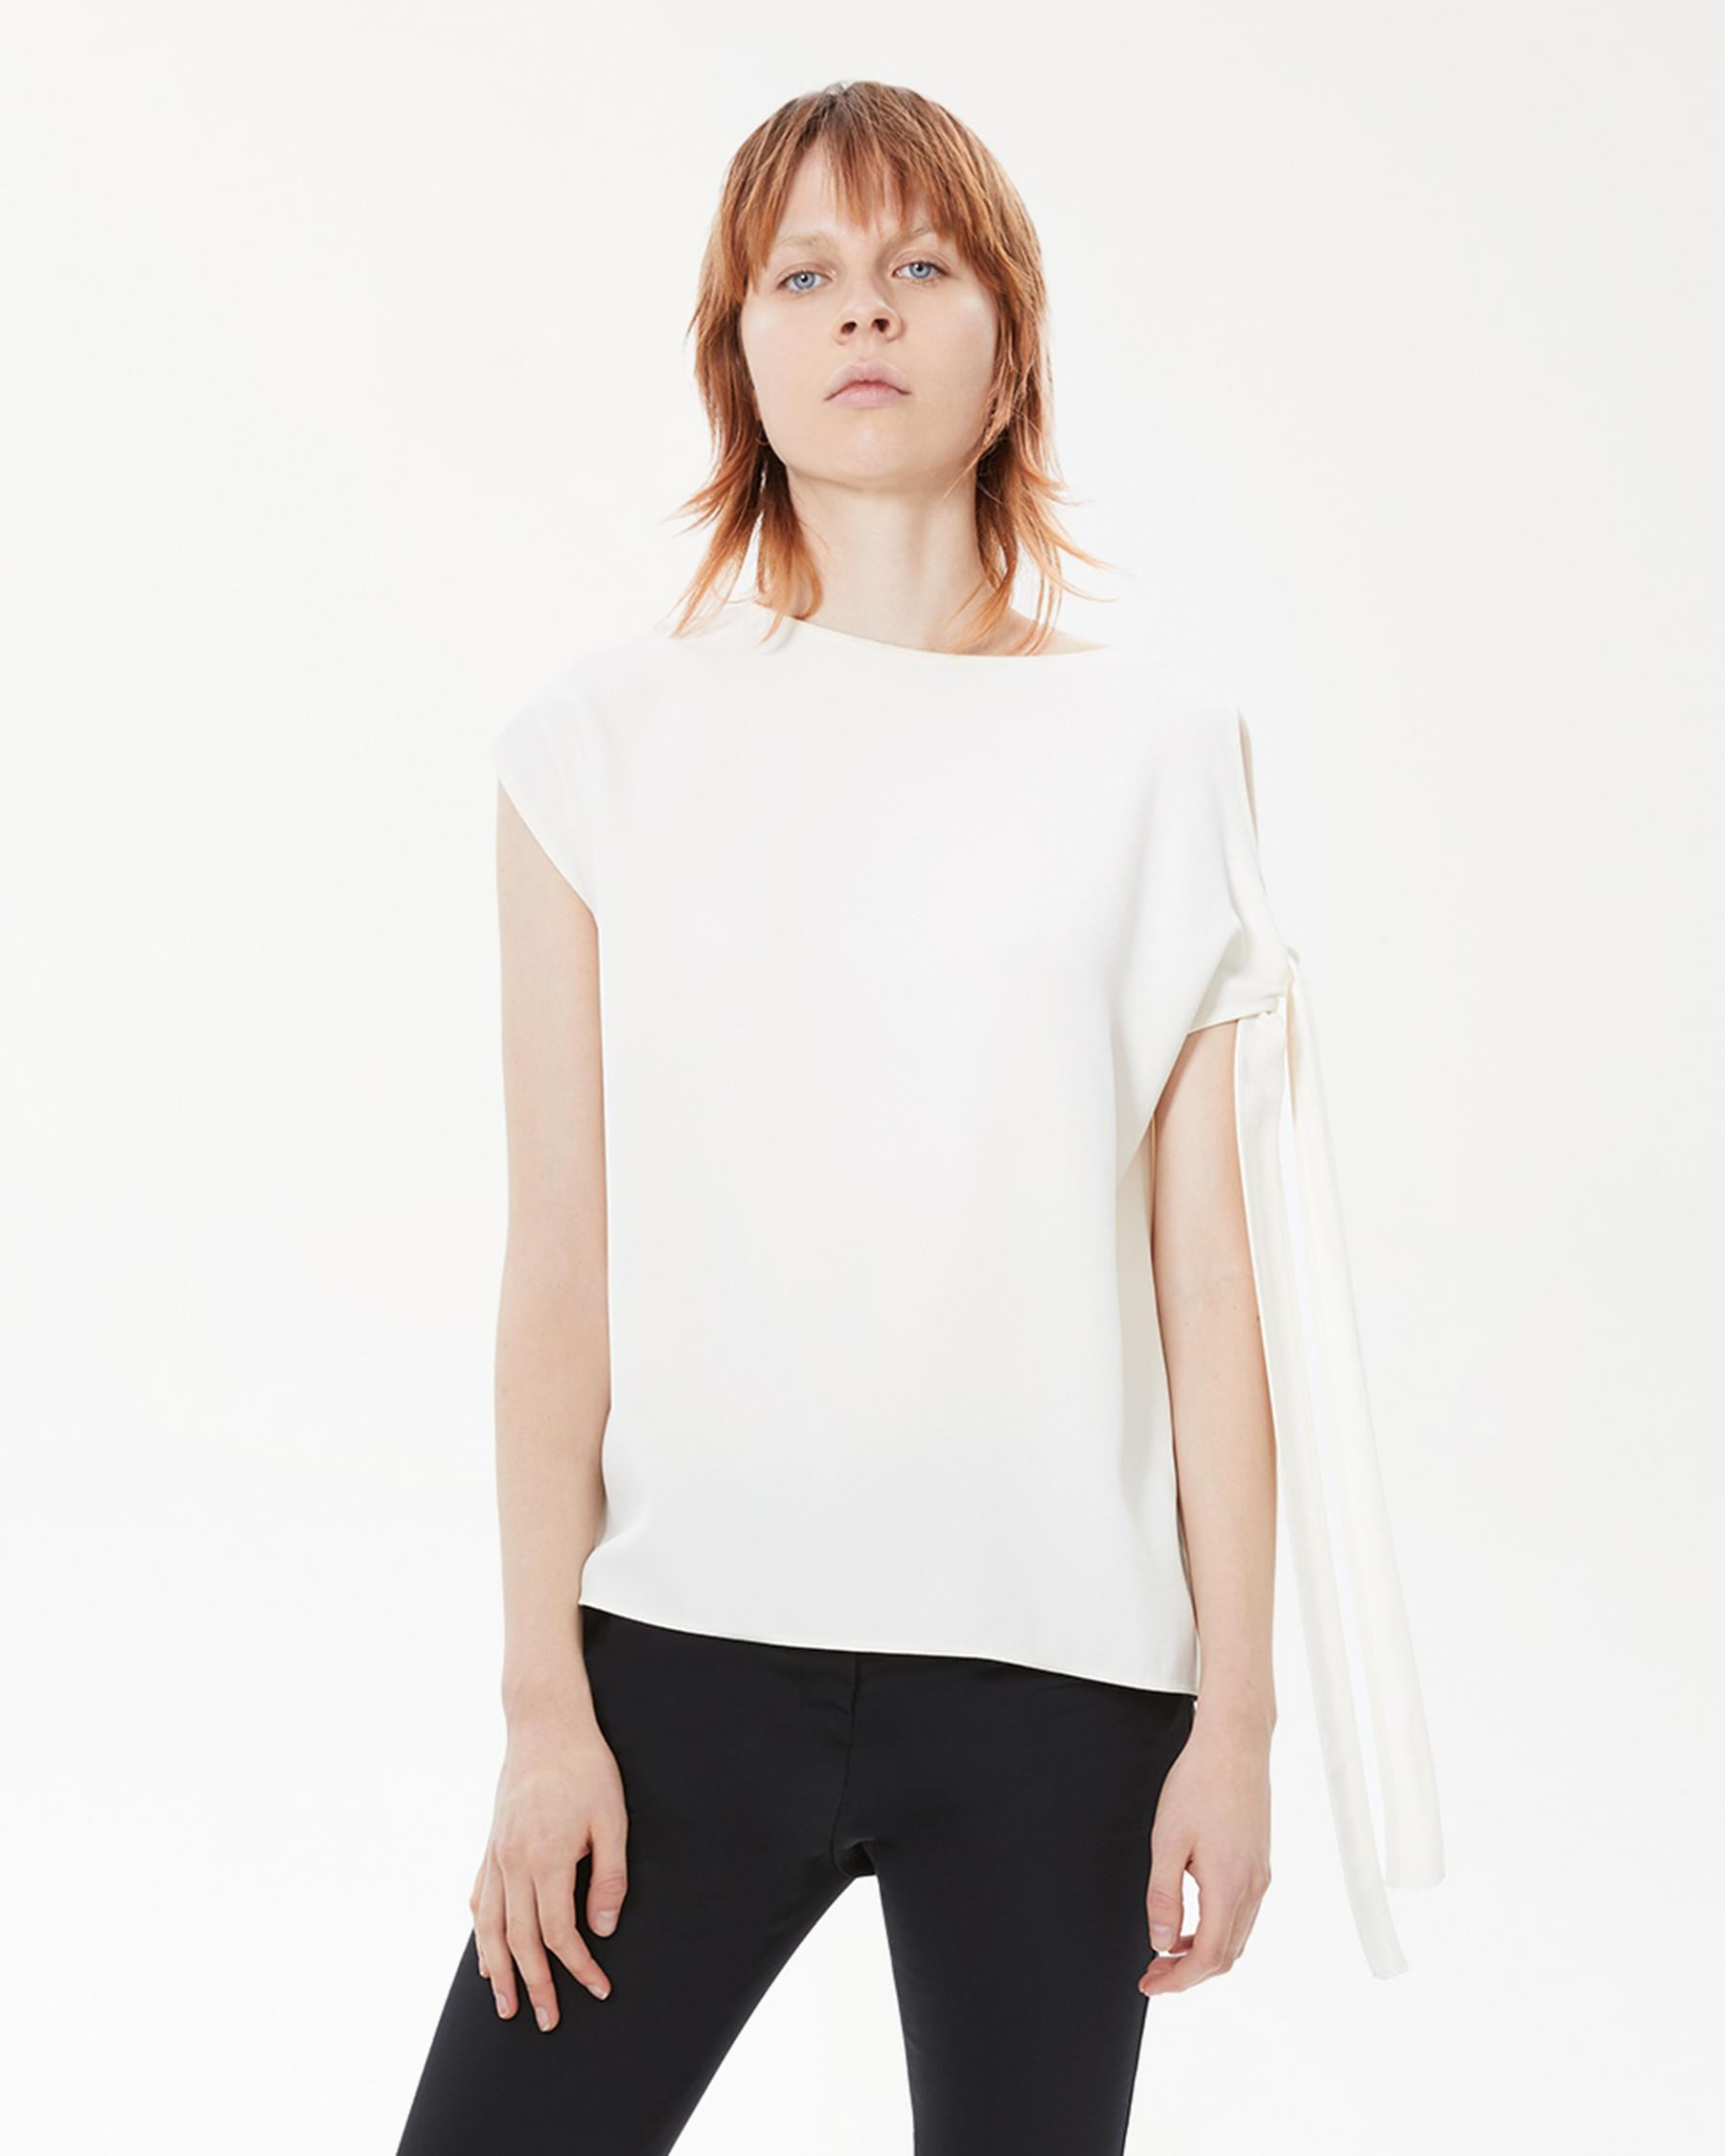 Helmut Lang 30 - Sleeve Tie Top - White